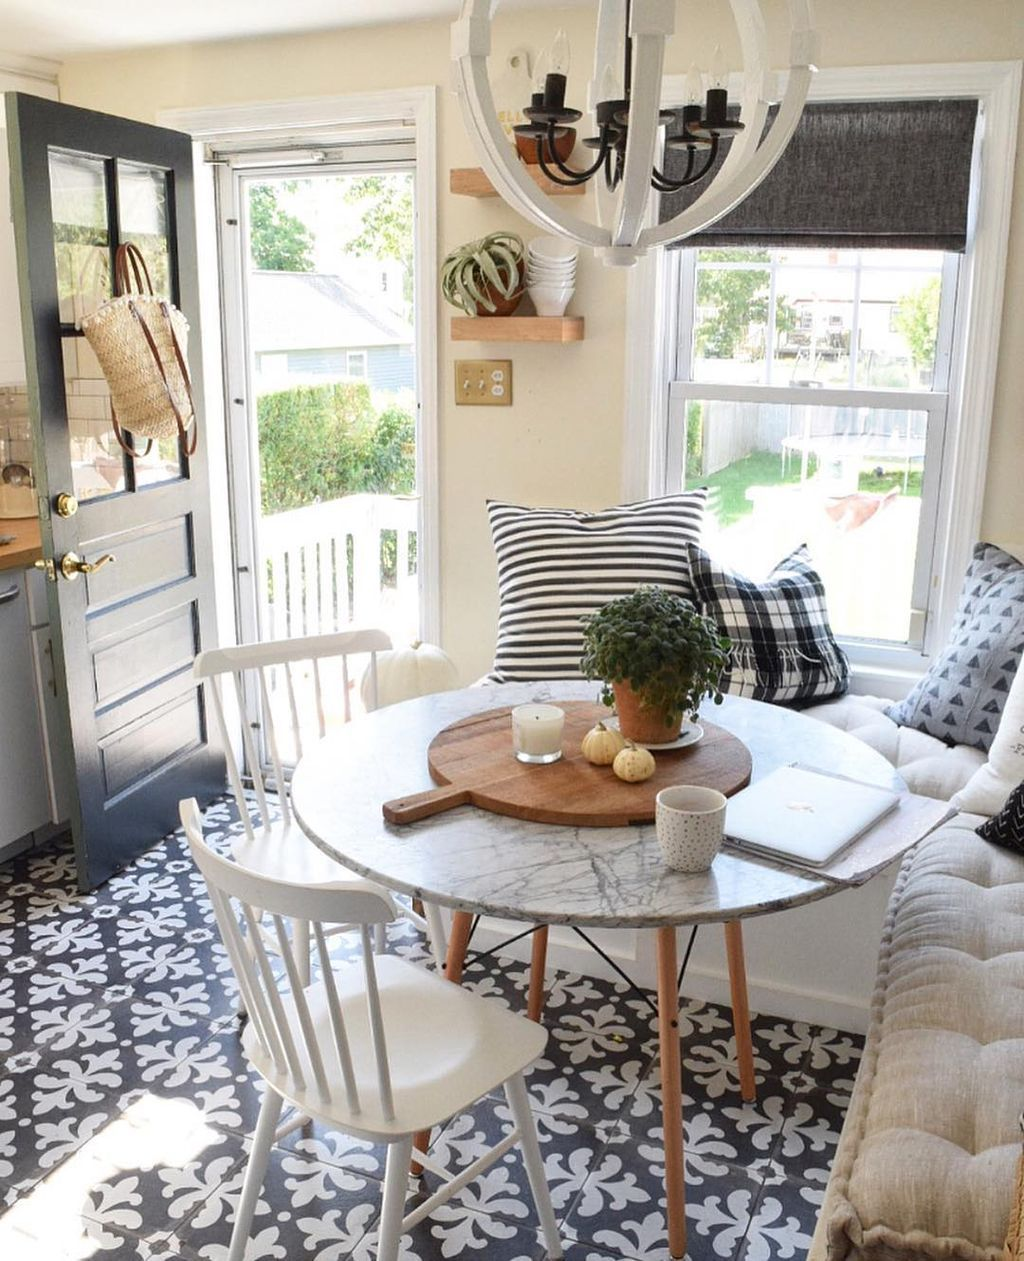 Crate And Barrel Desi Rug: Adorable 65 Beautiful Small Dinning Table Design Ideas On